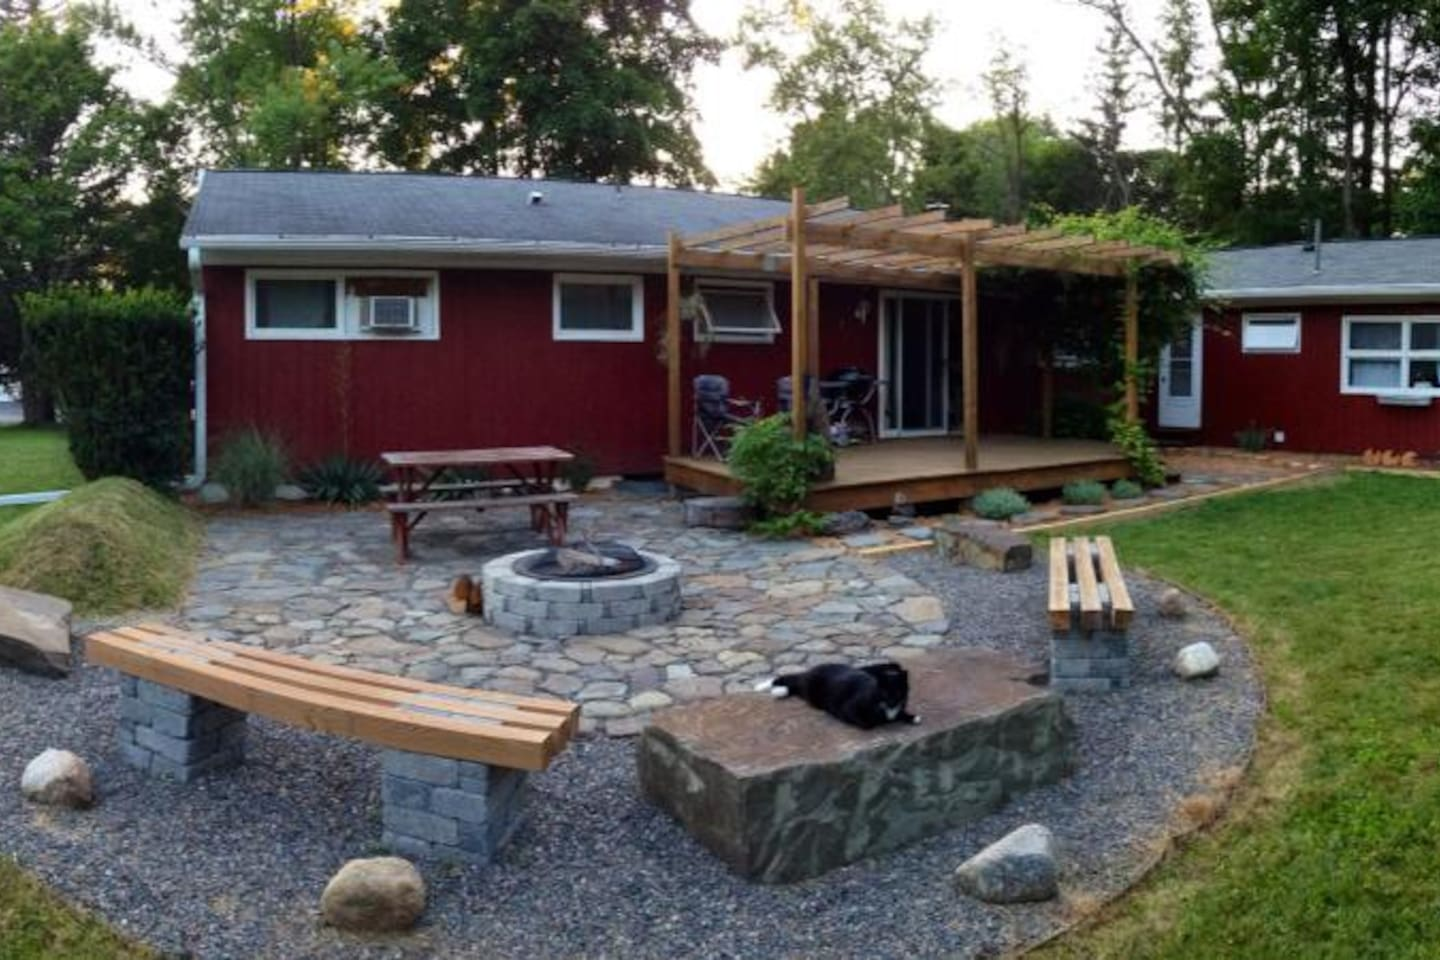 Back yard deck and patio w/firepit